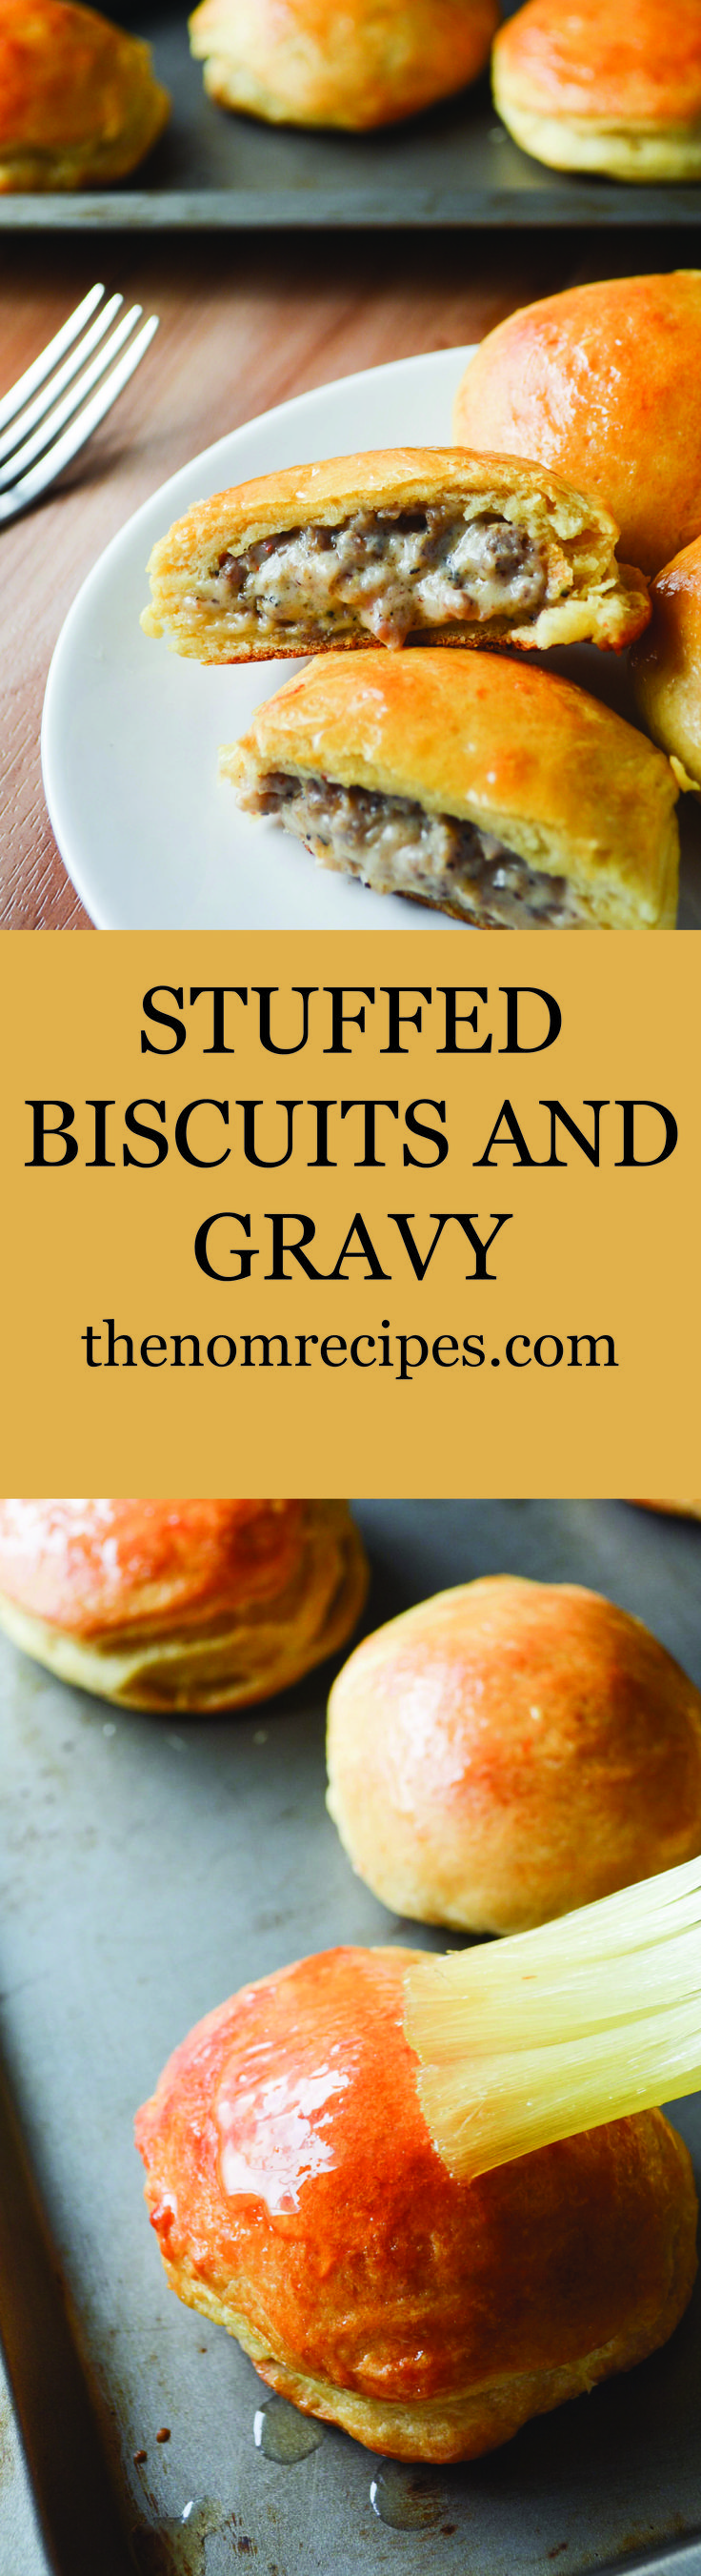 Stuffed biscuits and gravy in a honey butter glaze is fun spin on a Midwest breakfast classic. | thenomrecipes.com